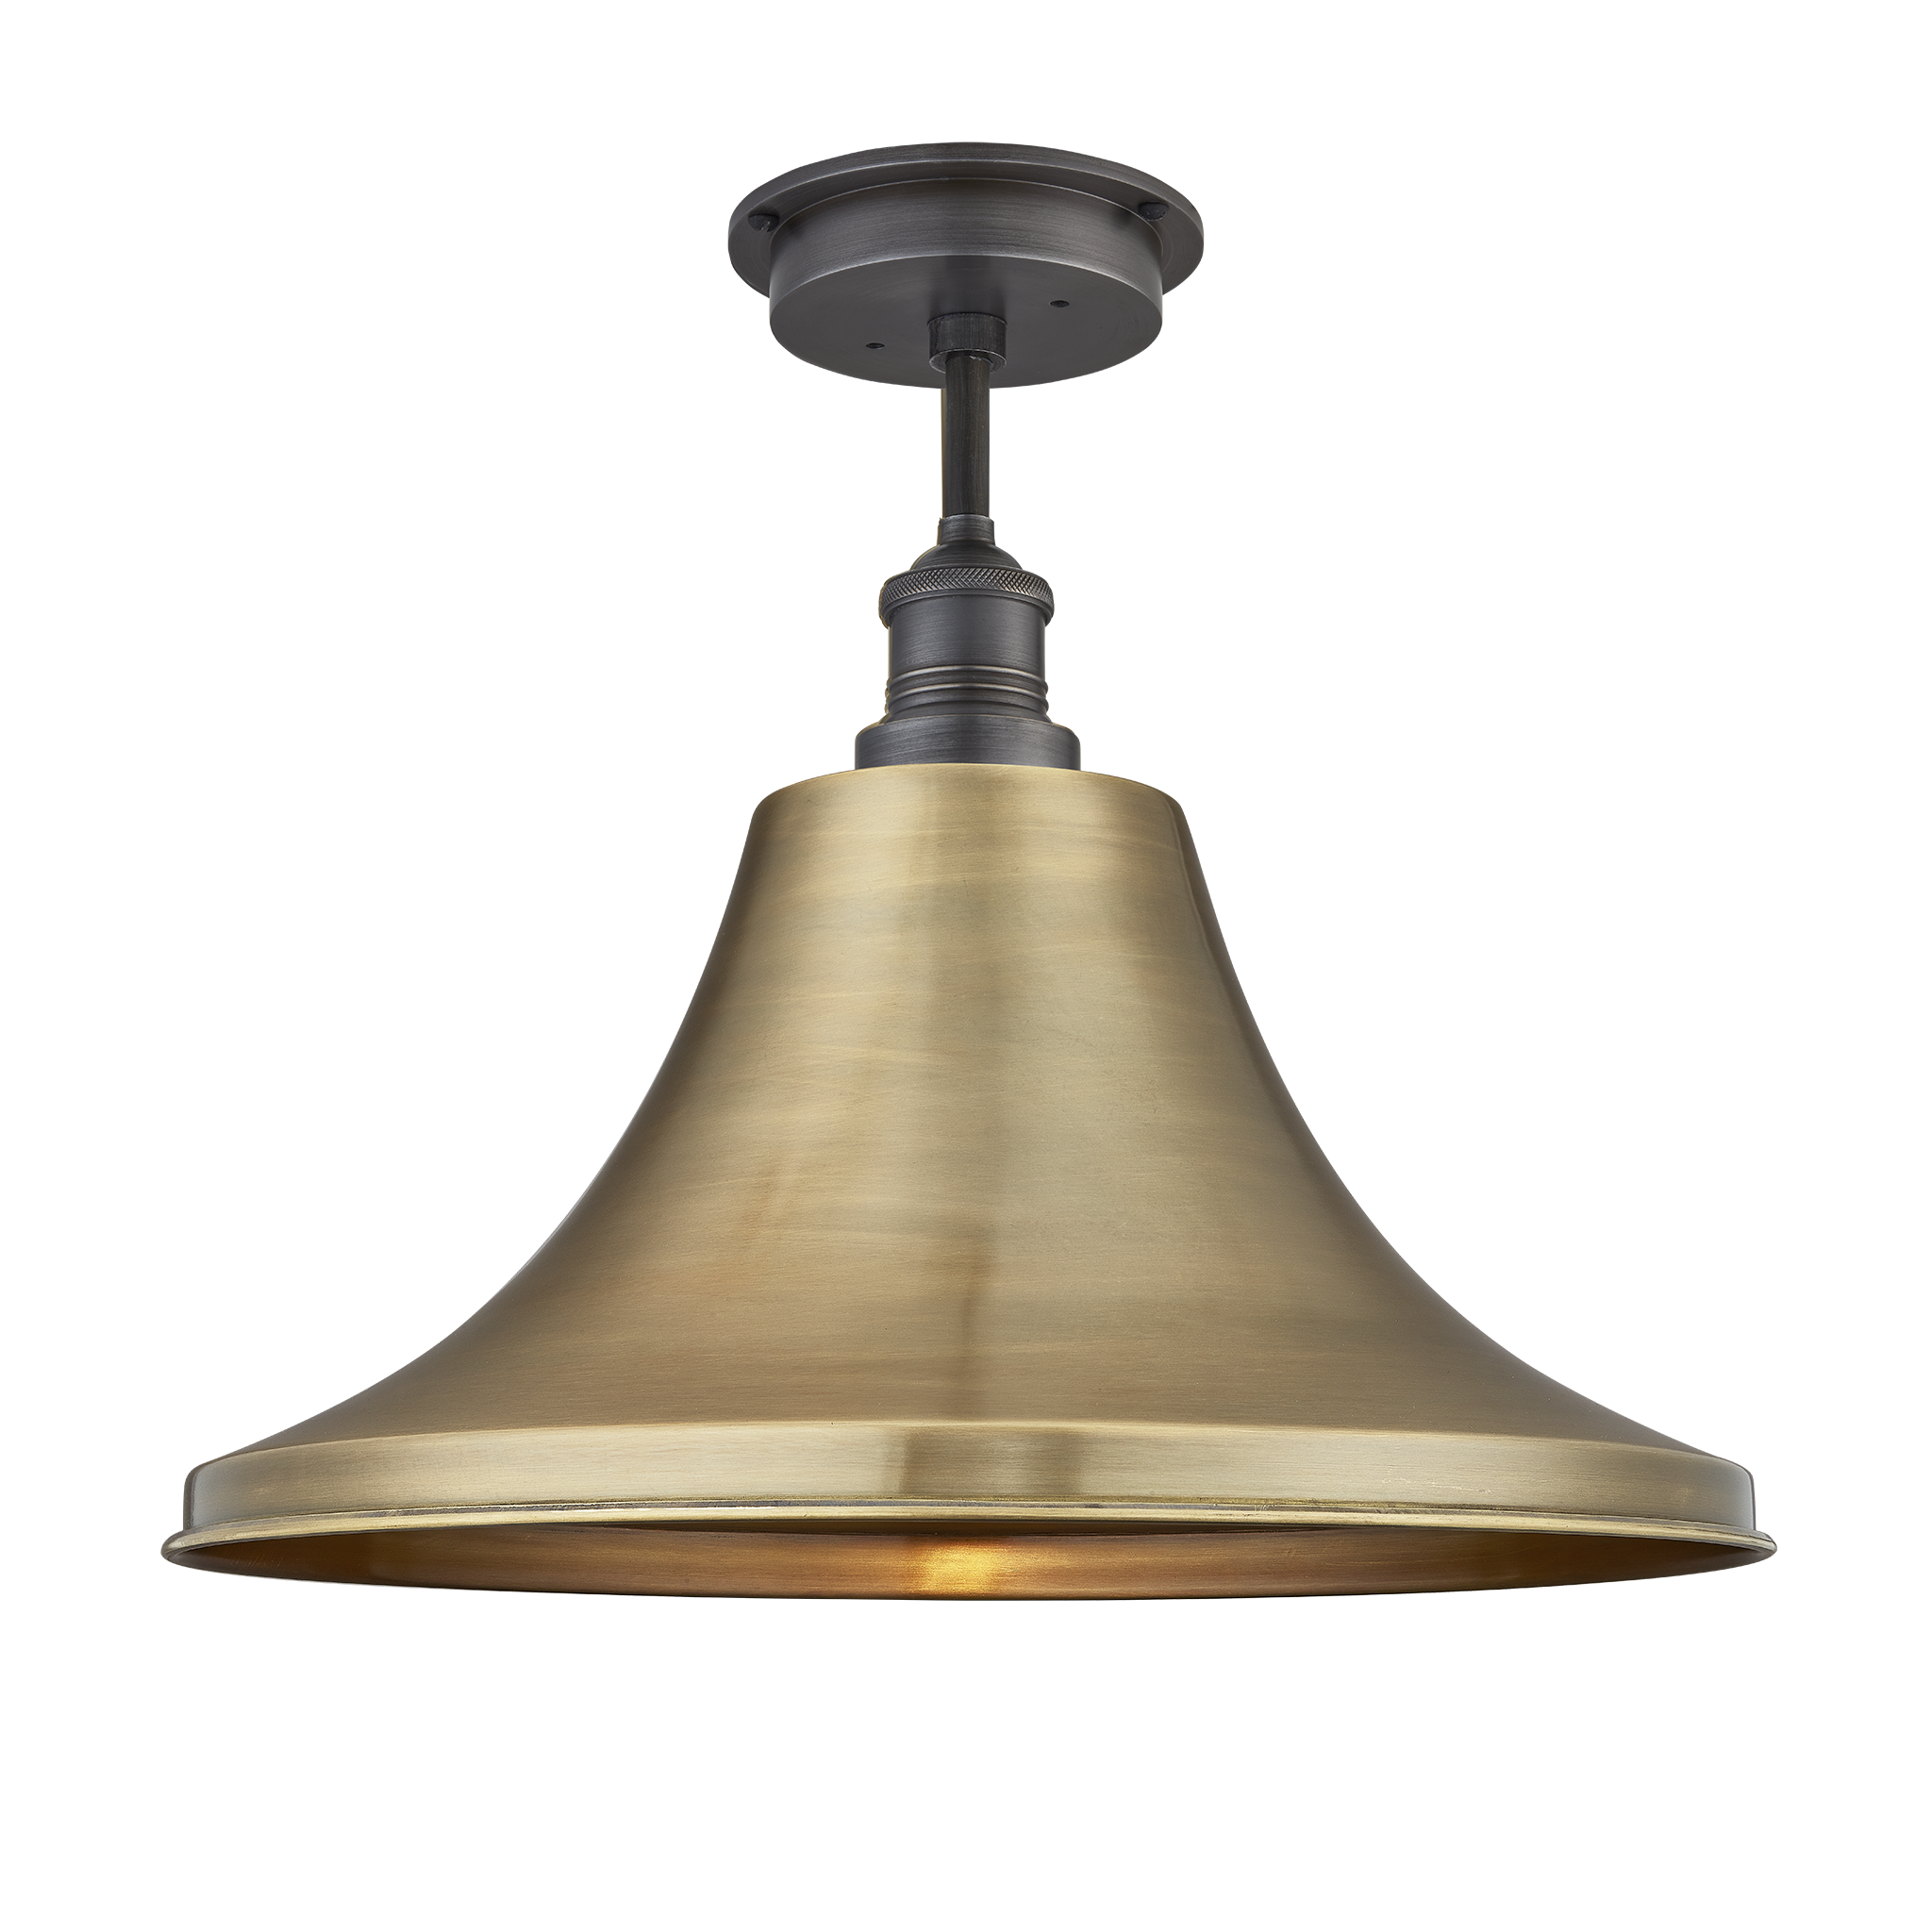 20 Inch Giant Bell - Lighting - Industville